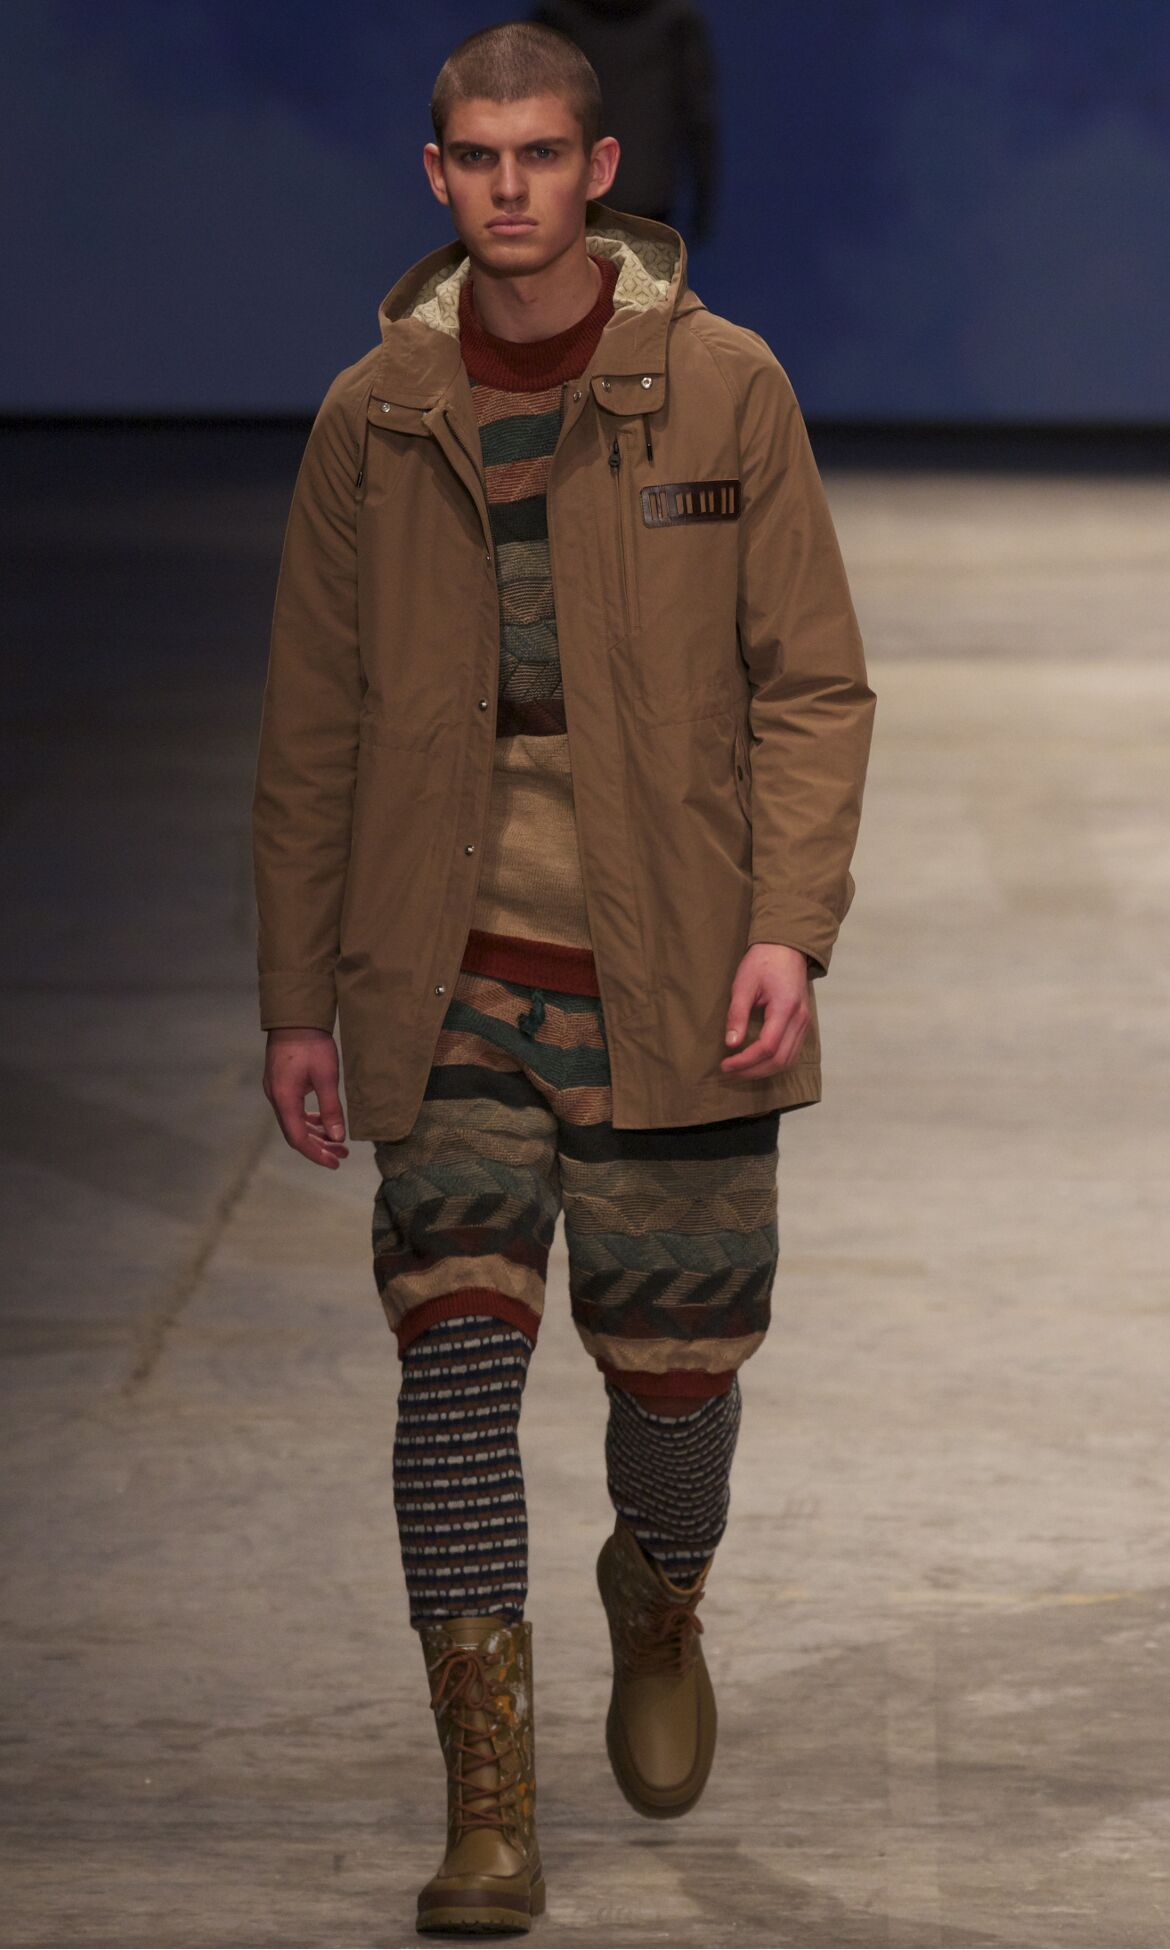 White Mountaineering Fashion Show FW 2013 2014